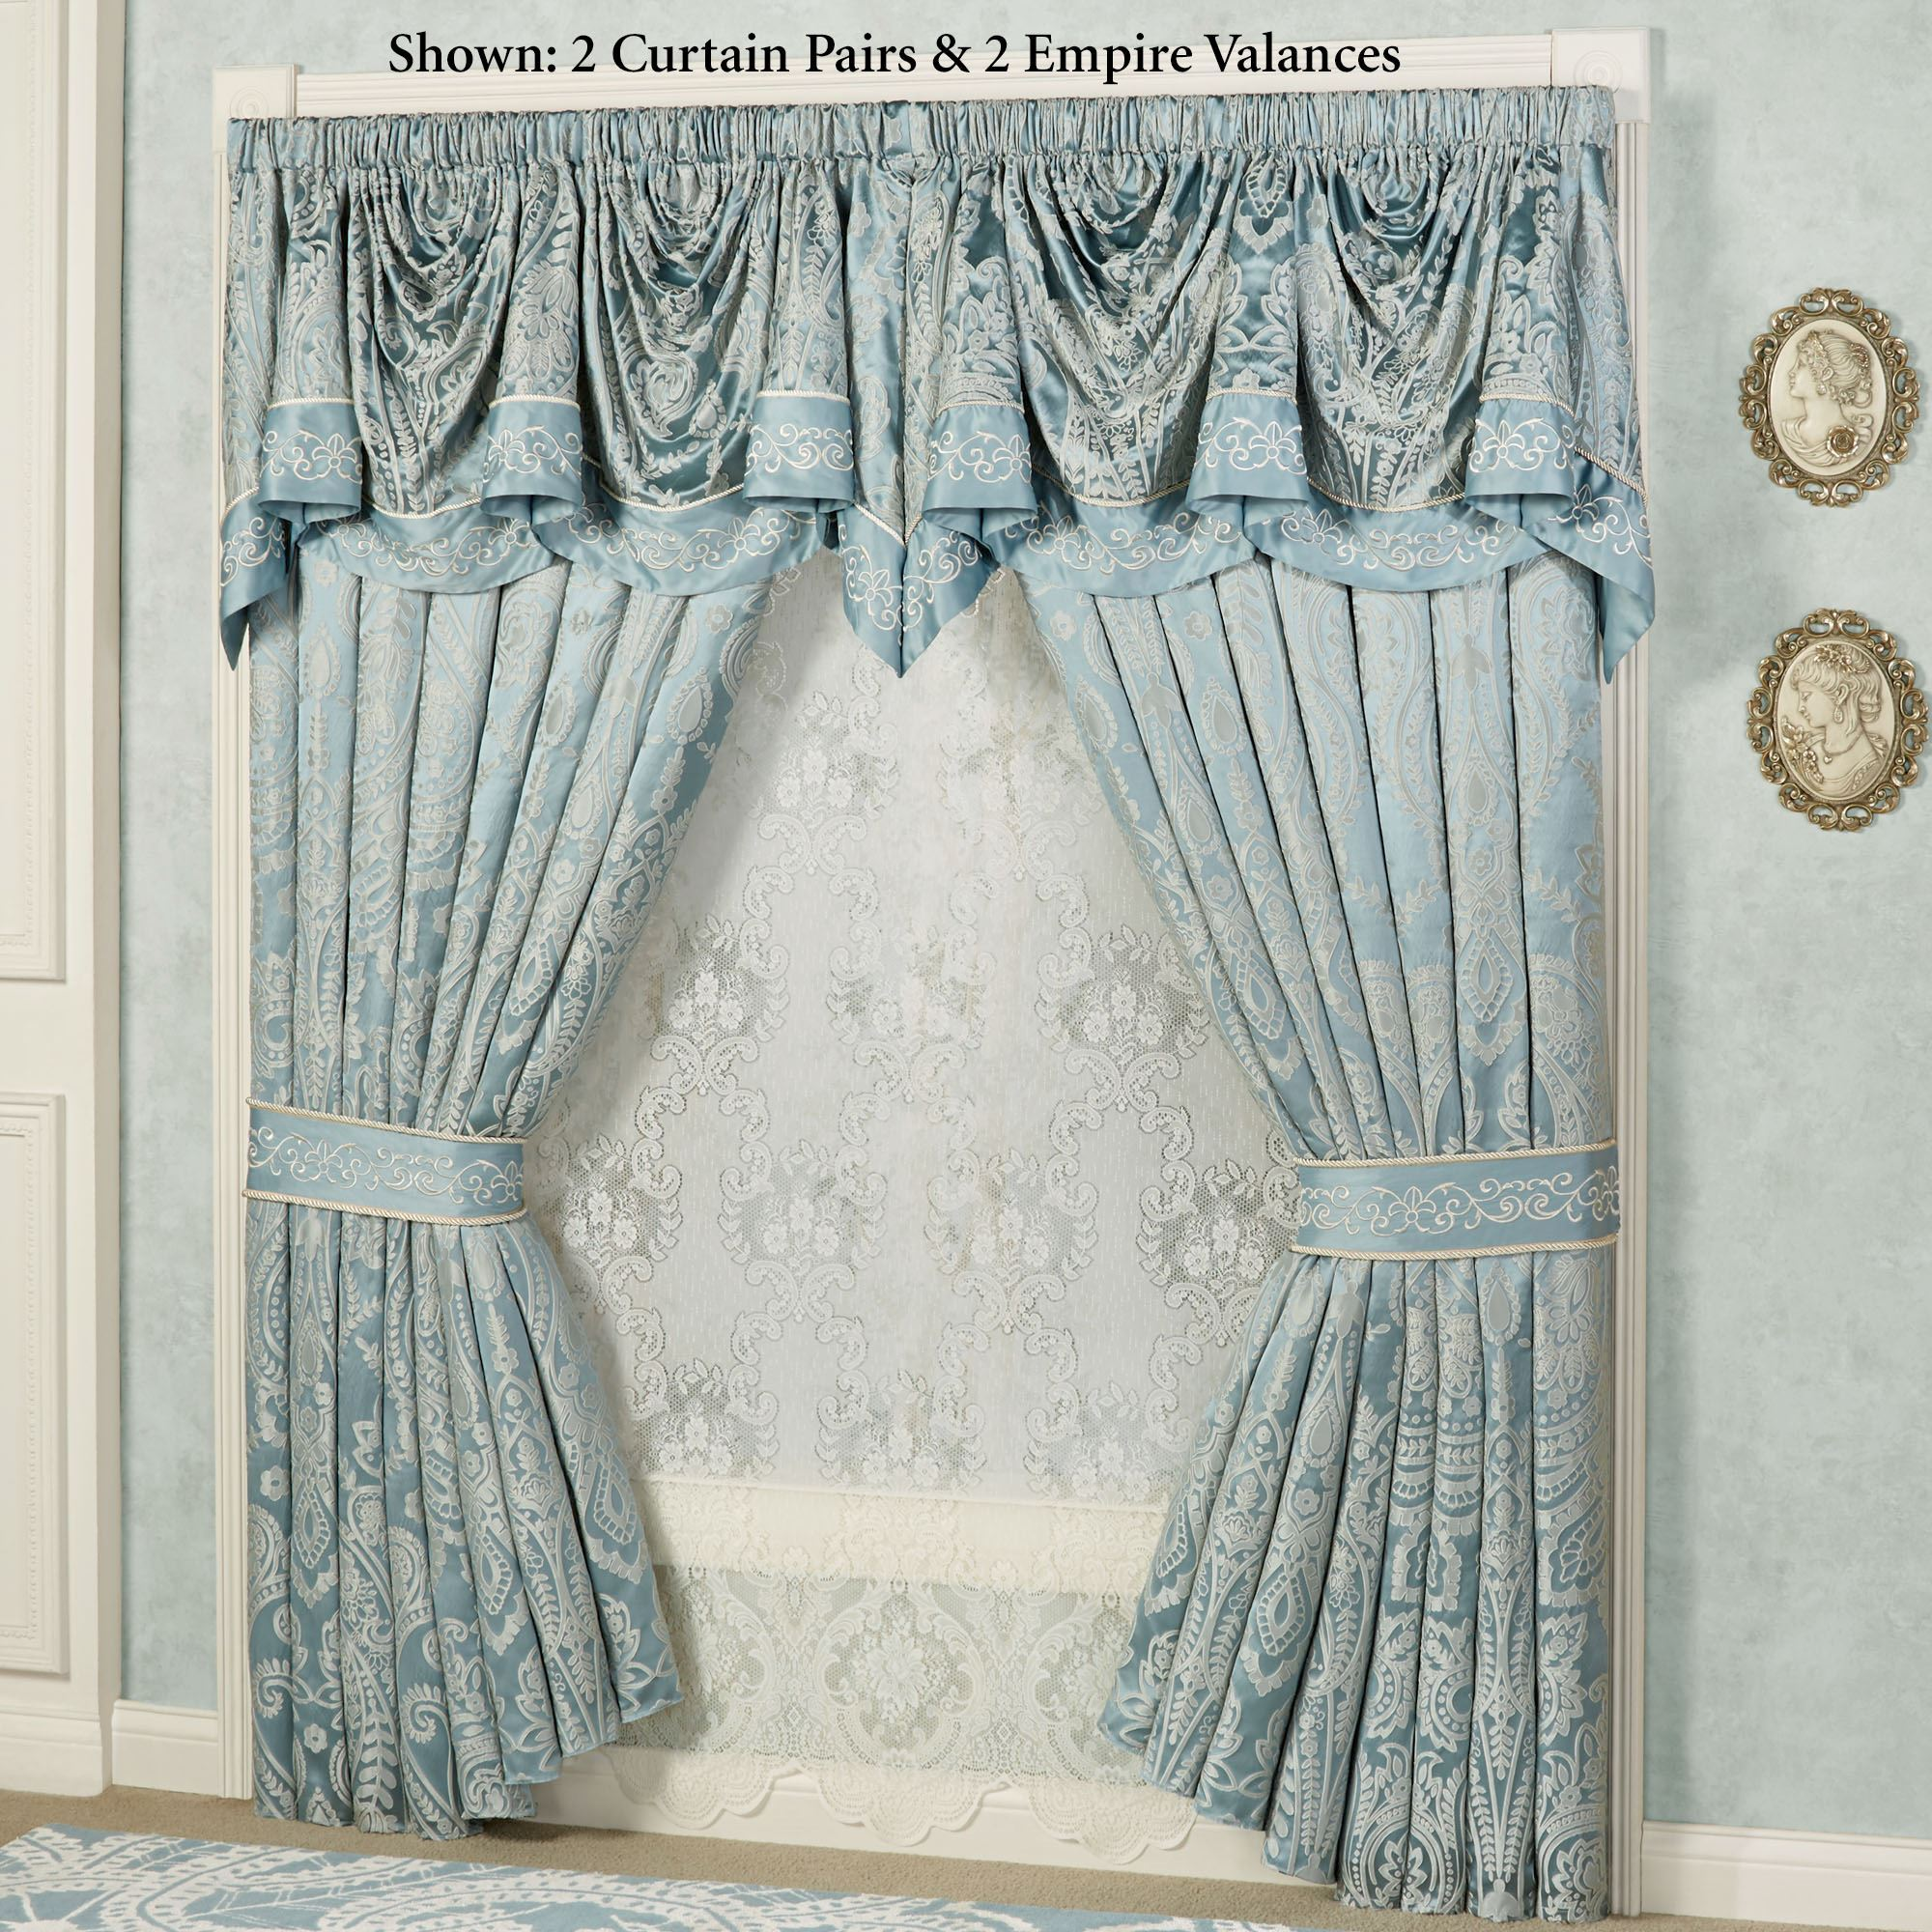 target online natalie patterns beads furniture ideas valances room dining twisted shipping fabric floral free traditions navarra swags for park madison fascinating by kitchen pinterest and curtain tab window valance com with waverly box walmart